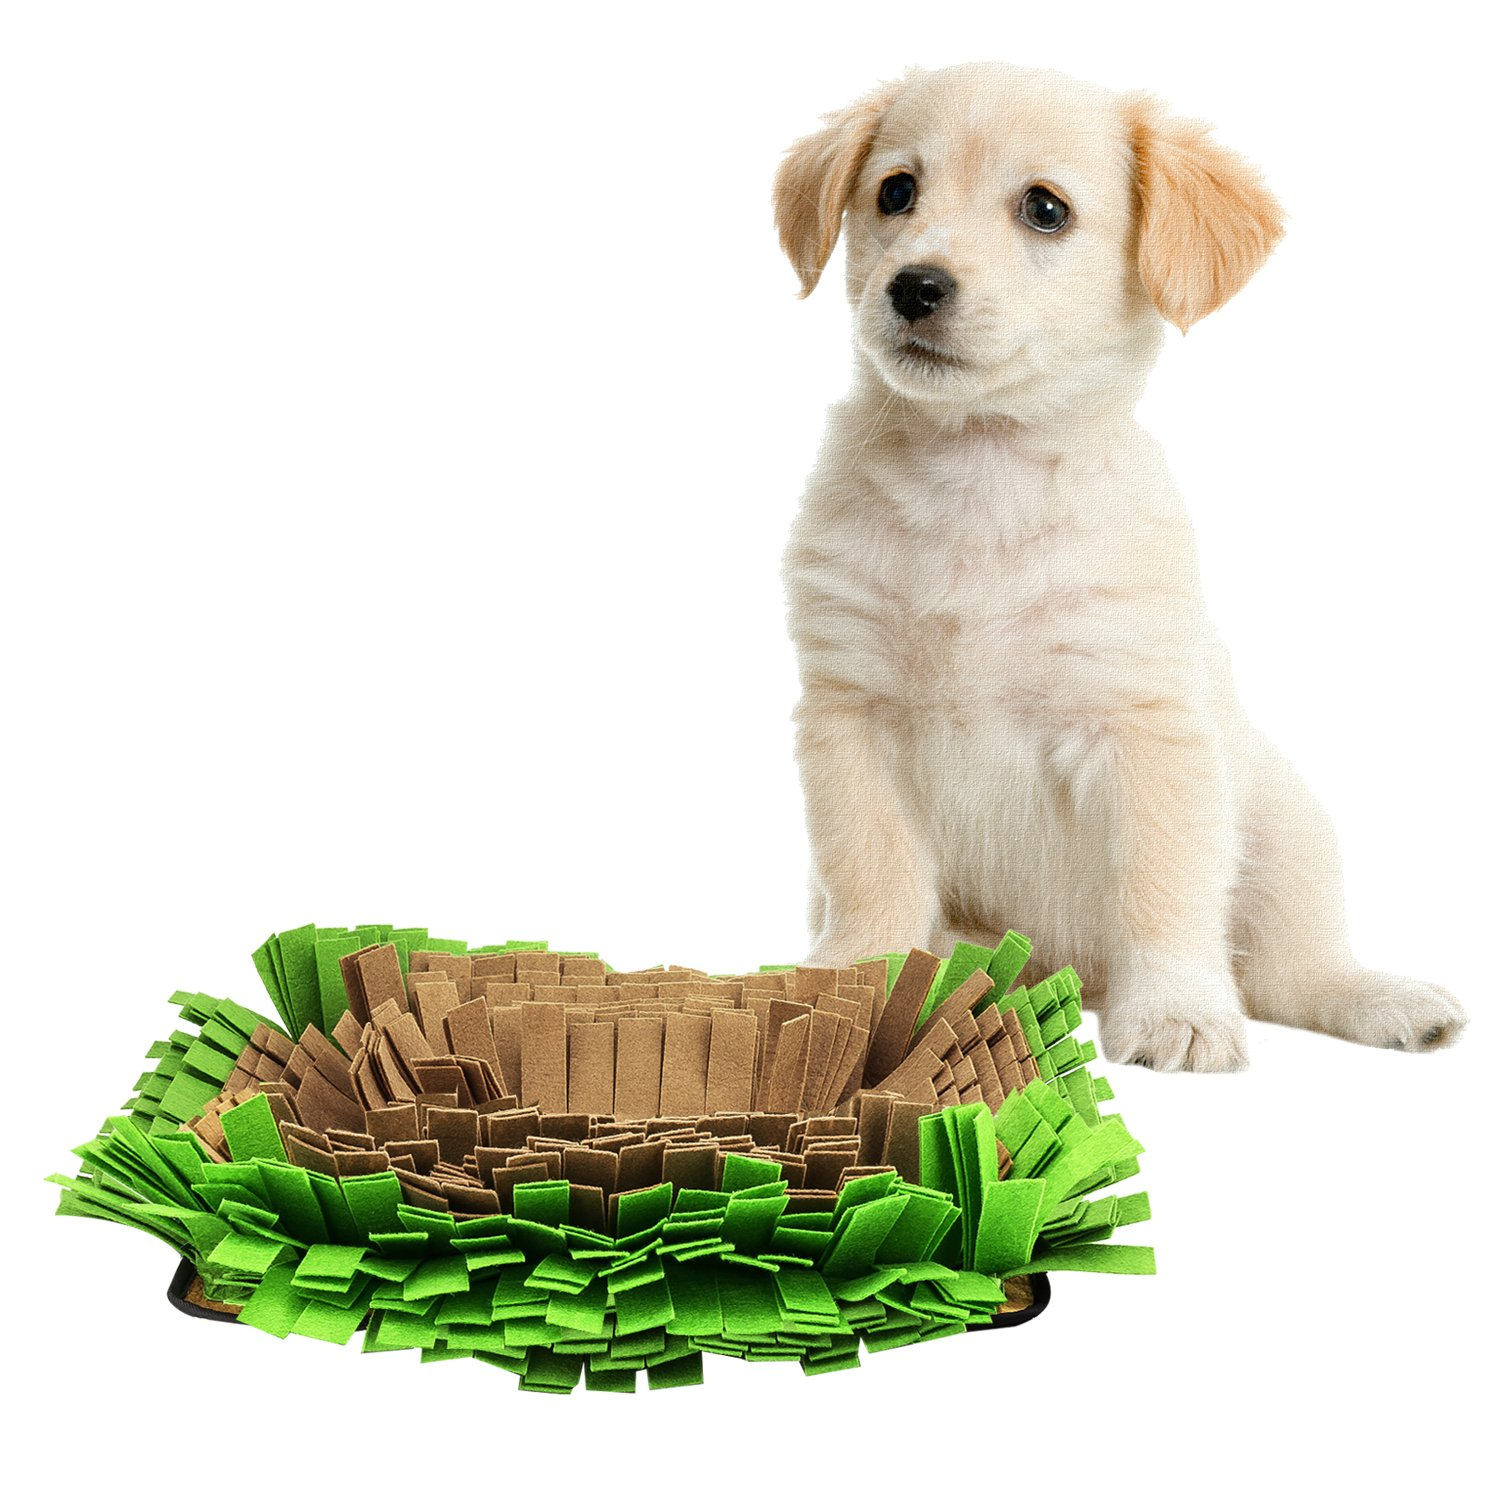 Pawaboo Dog Snuffle Mat, 17.3'' x 12.6'' Premium Foldable Dog Nosework Mat Slow Feeding Mat Dog Training and Feeding Mat Dog Play Mat for Small, Medium and Large Dogs, Brown and Green